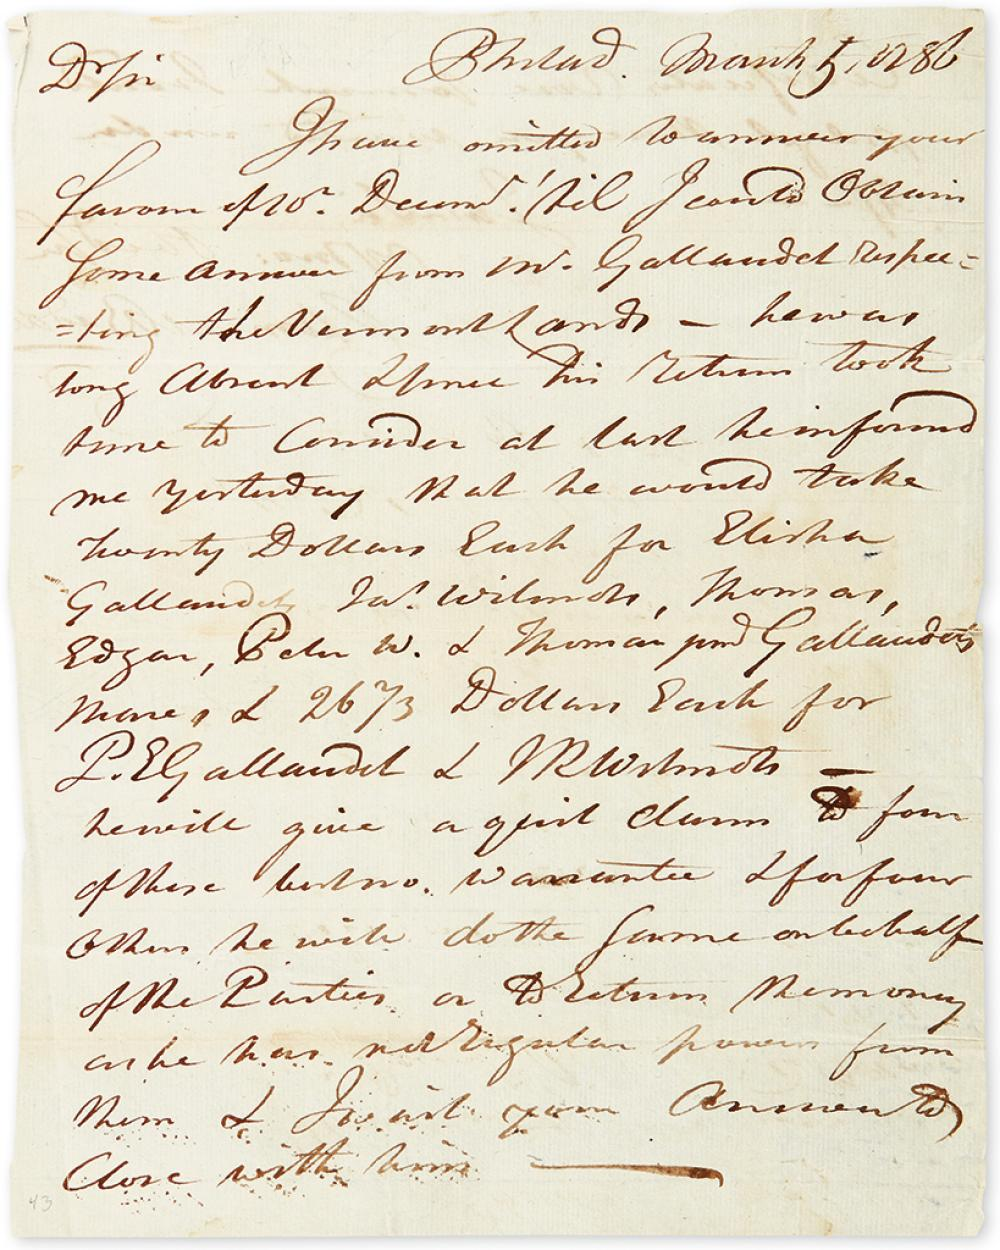 BIDDLE, CLEMENT. Autograph Letter Signed, to